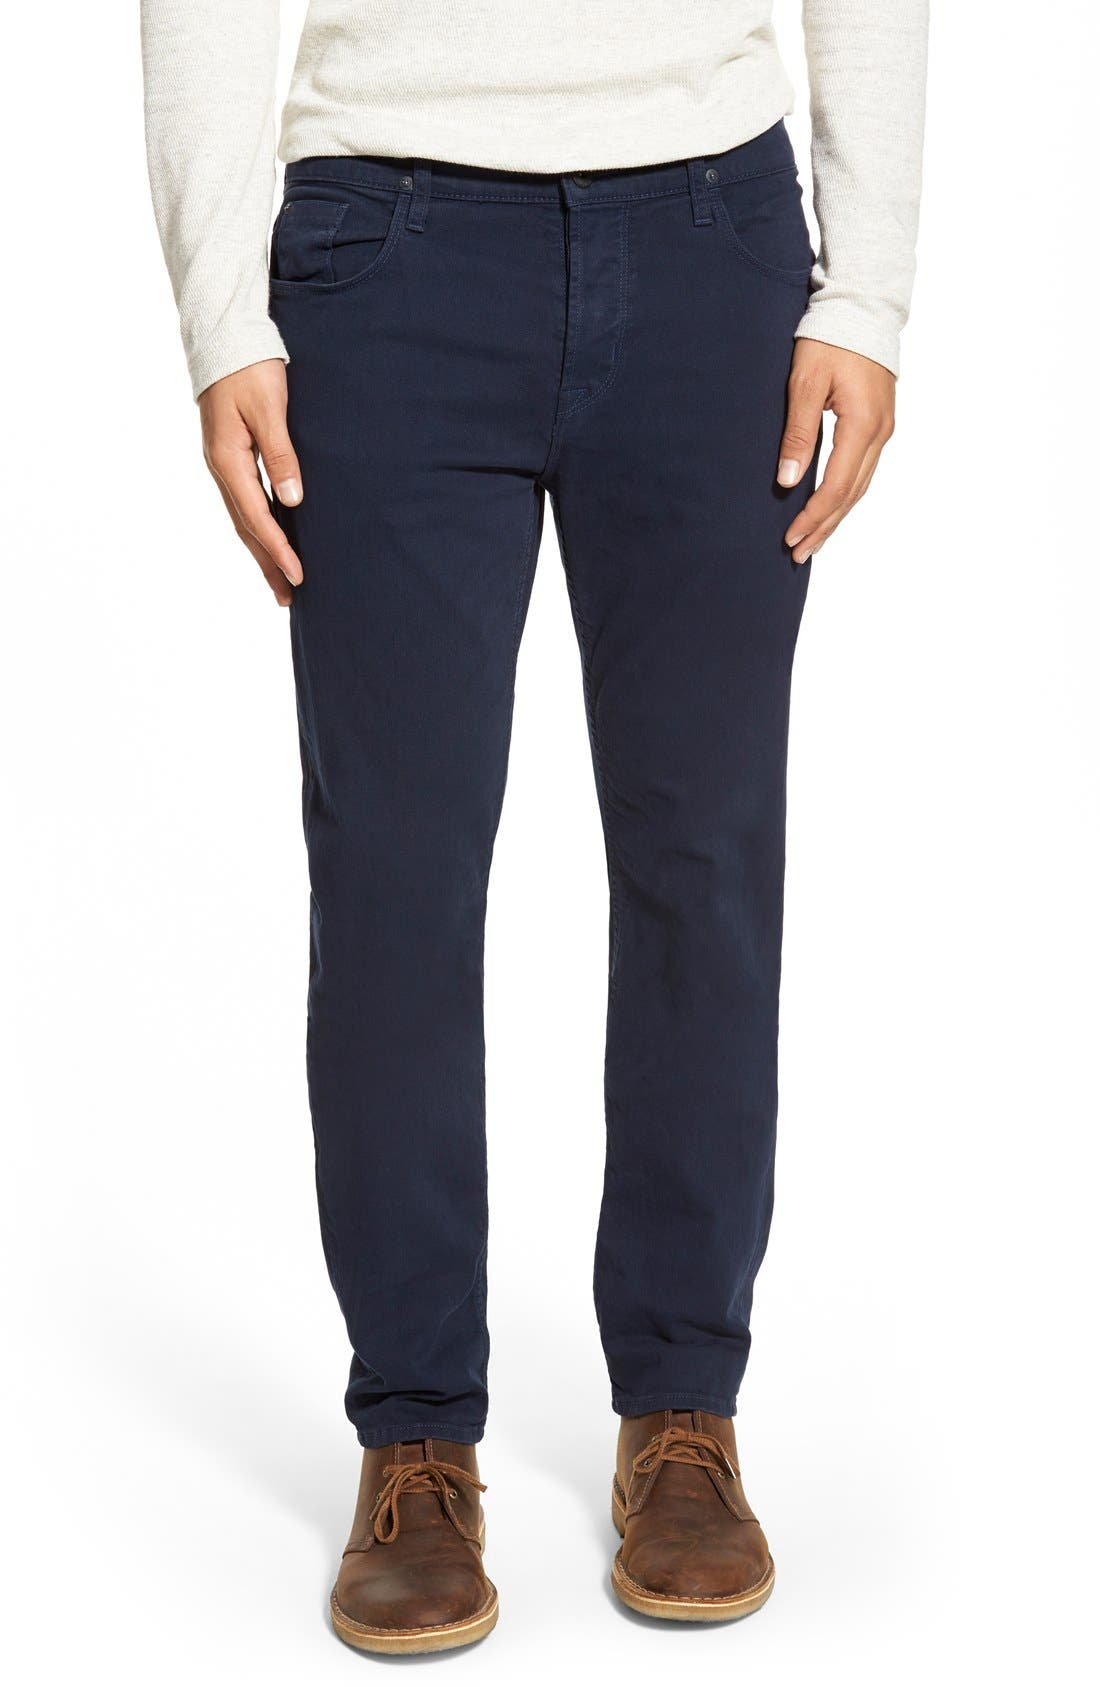 Alternate Image 1 Selected - Hudson Jeans Blake Slim Fit Jeans (Covert Blue)